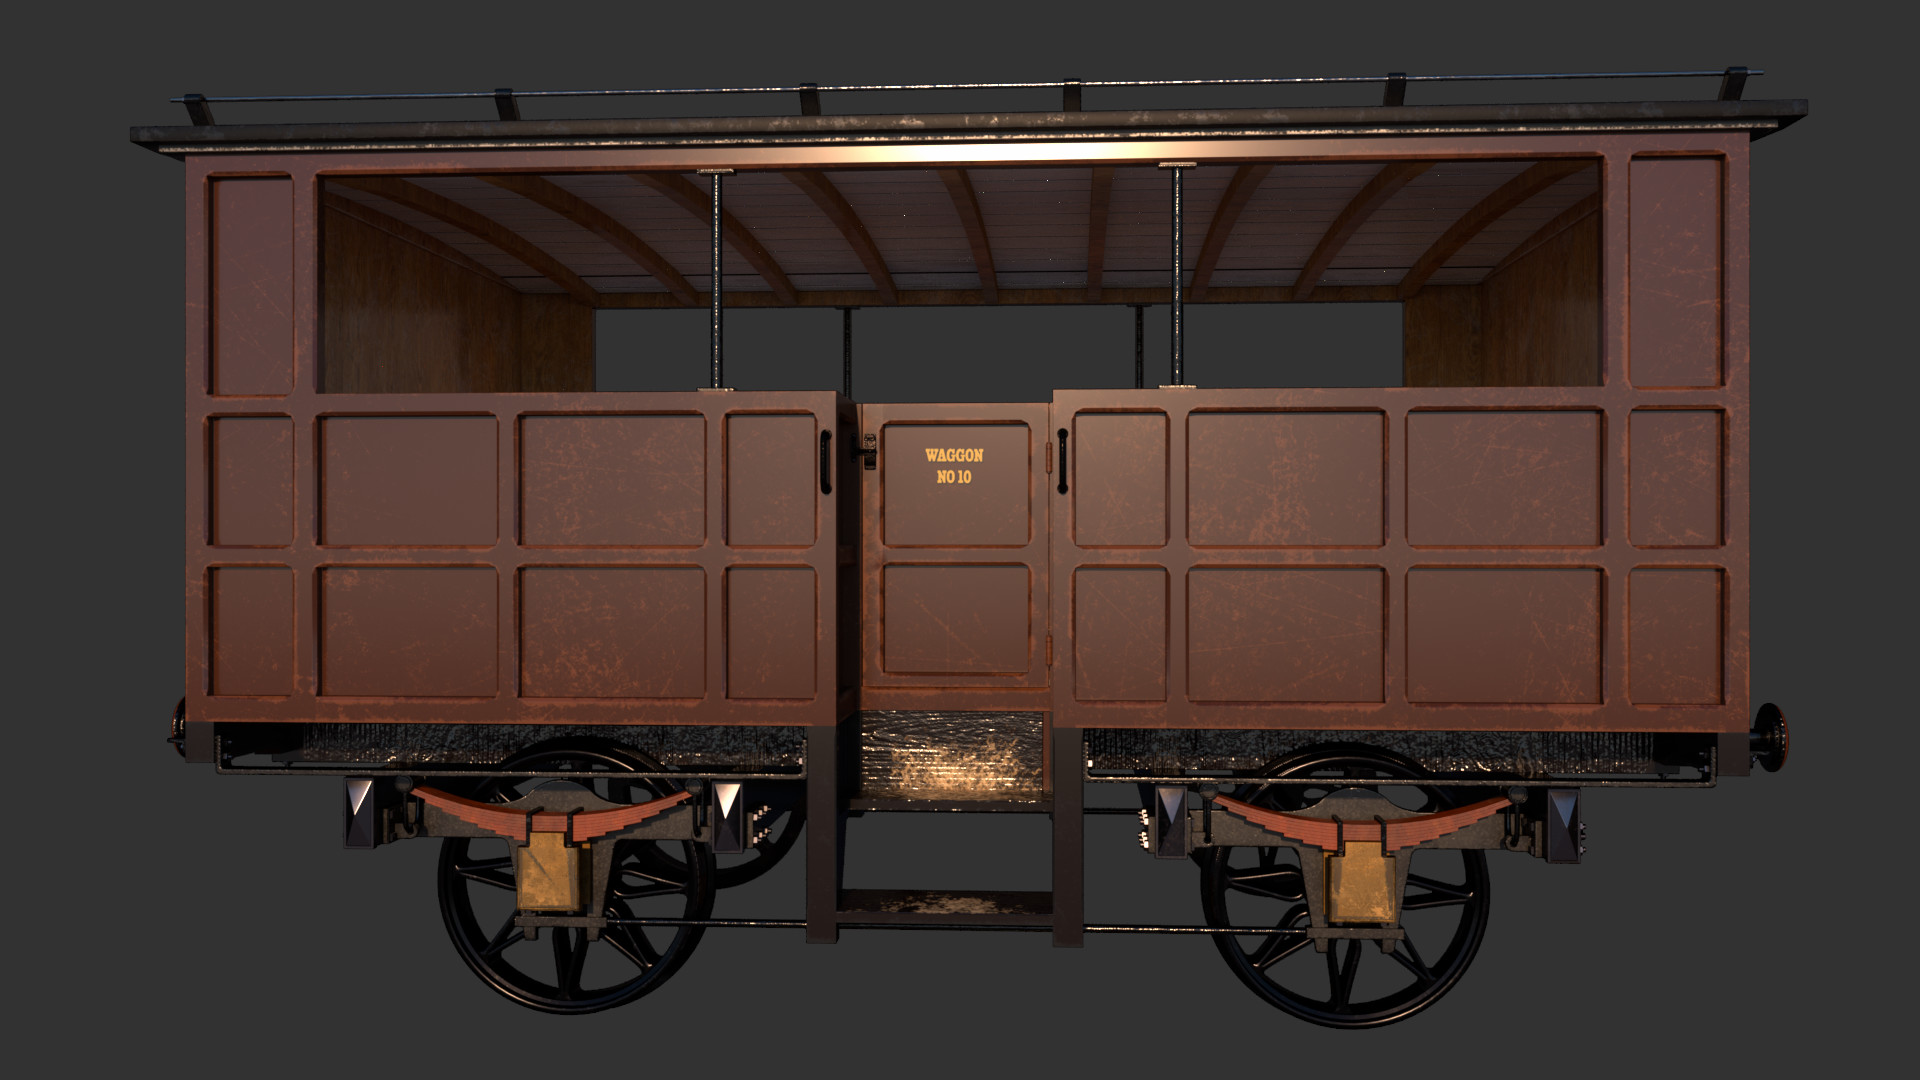 Waggon, color pass. This would be 3rd class. Nothing to protect you from the elements.